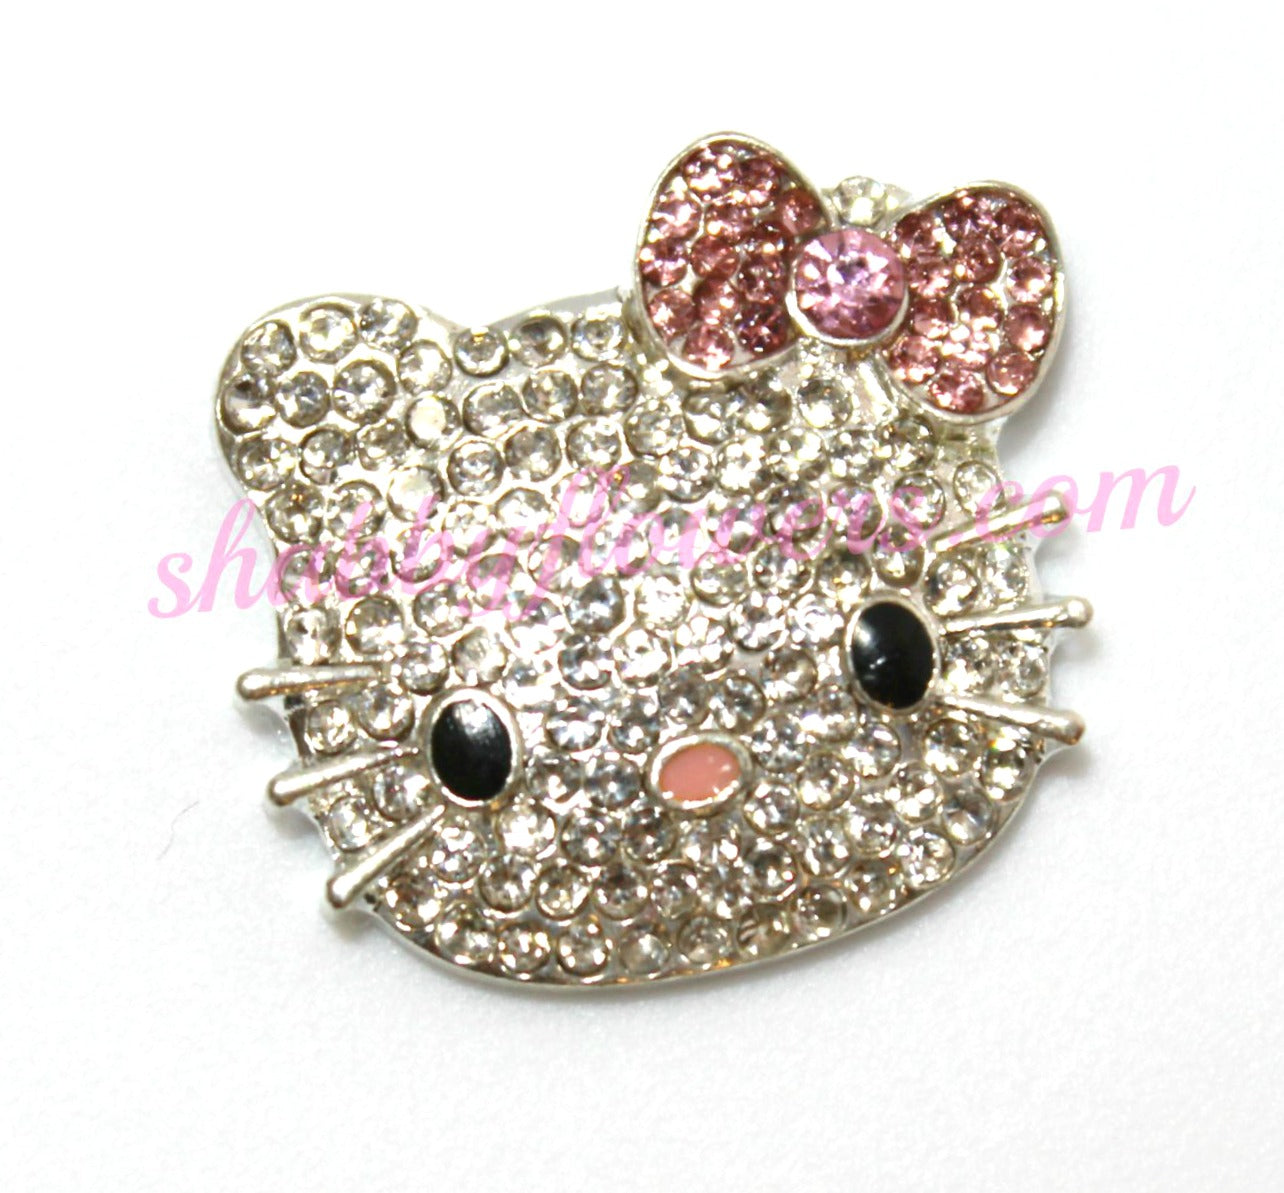 Embellishment - Kitty - Pink - shabbyflowers.com